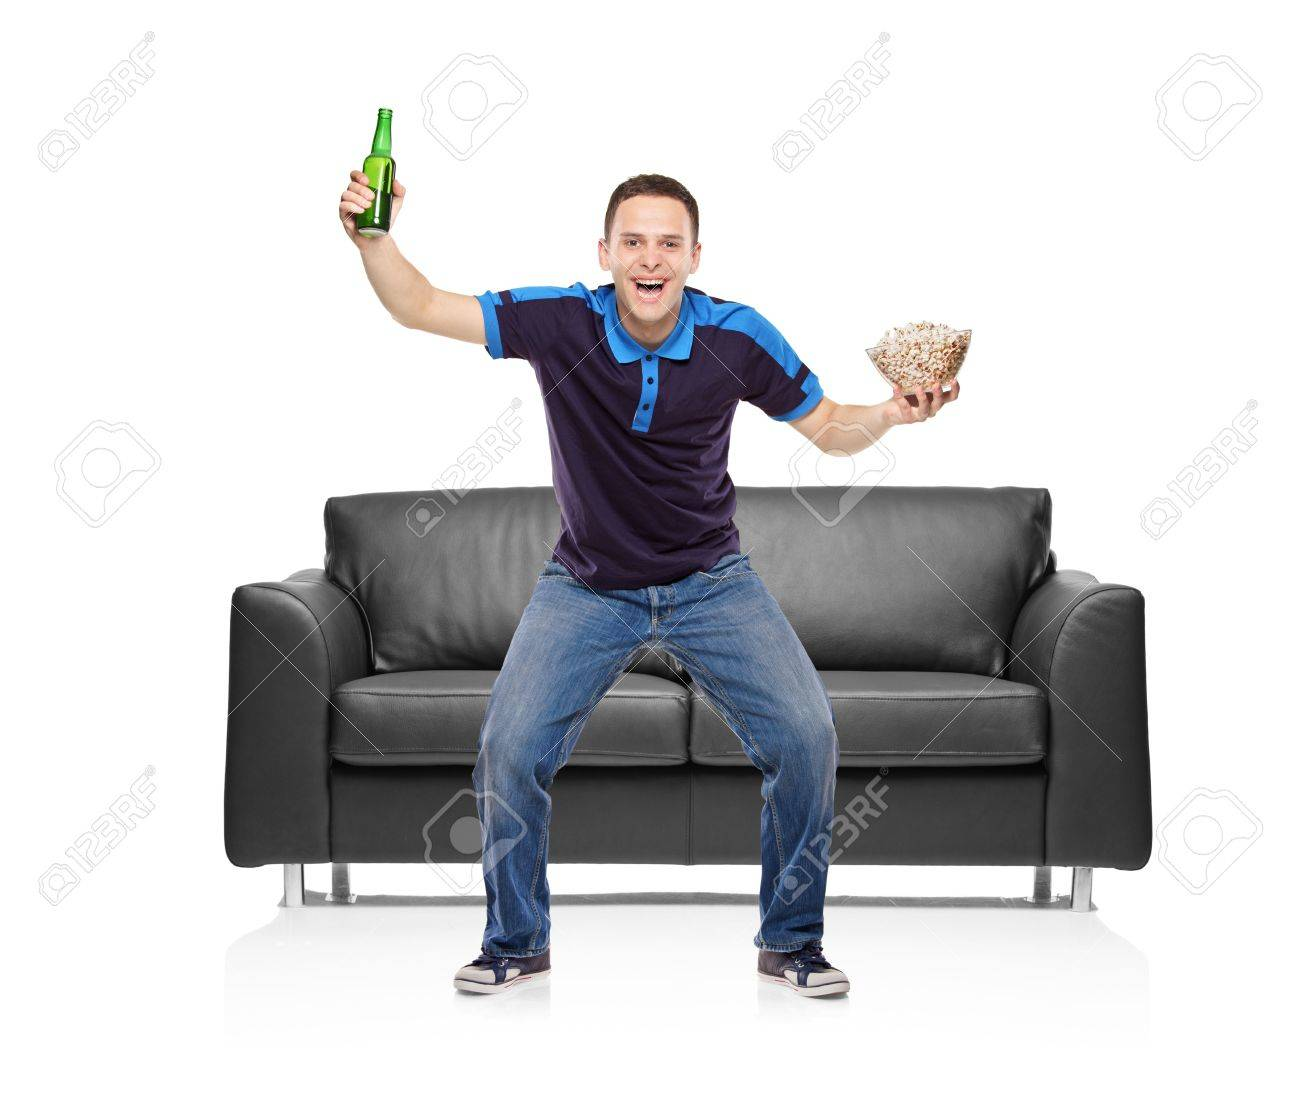 Sport fan with a beer bottle and popcorn bowl in his hands isolated on white background Stock Photo - 6997060